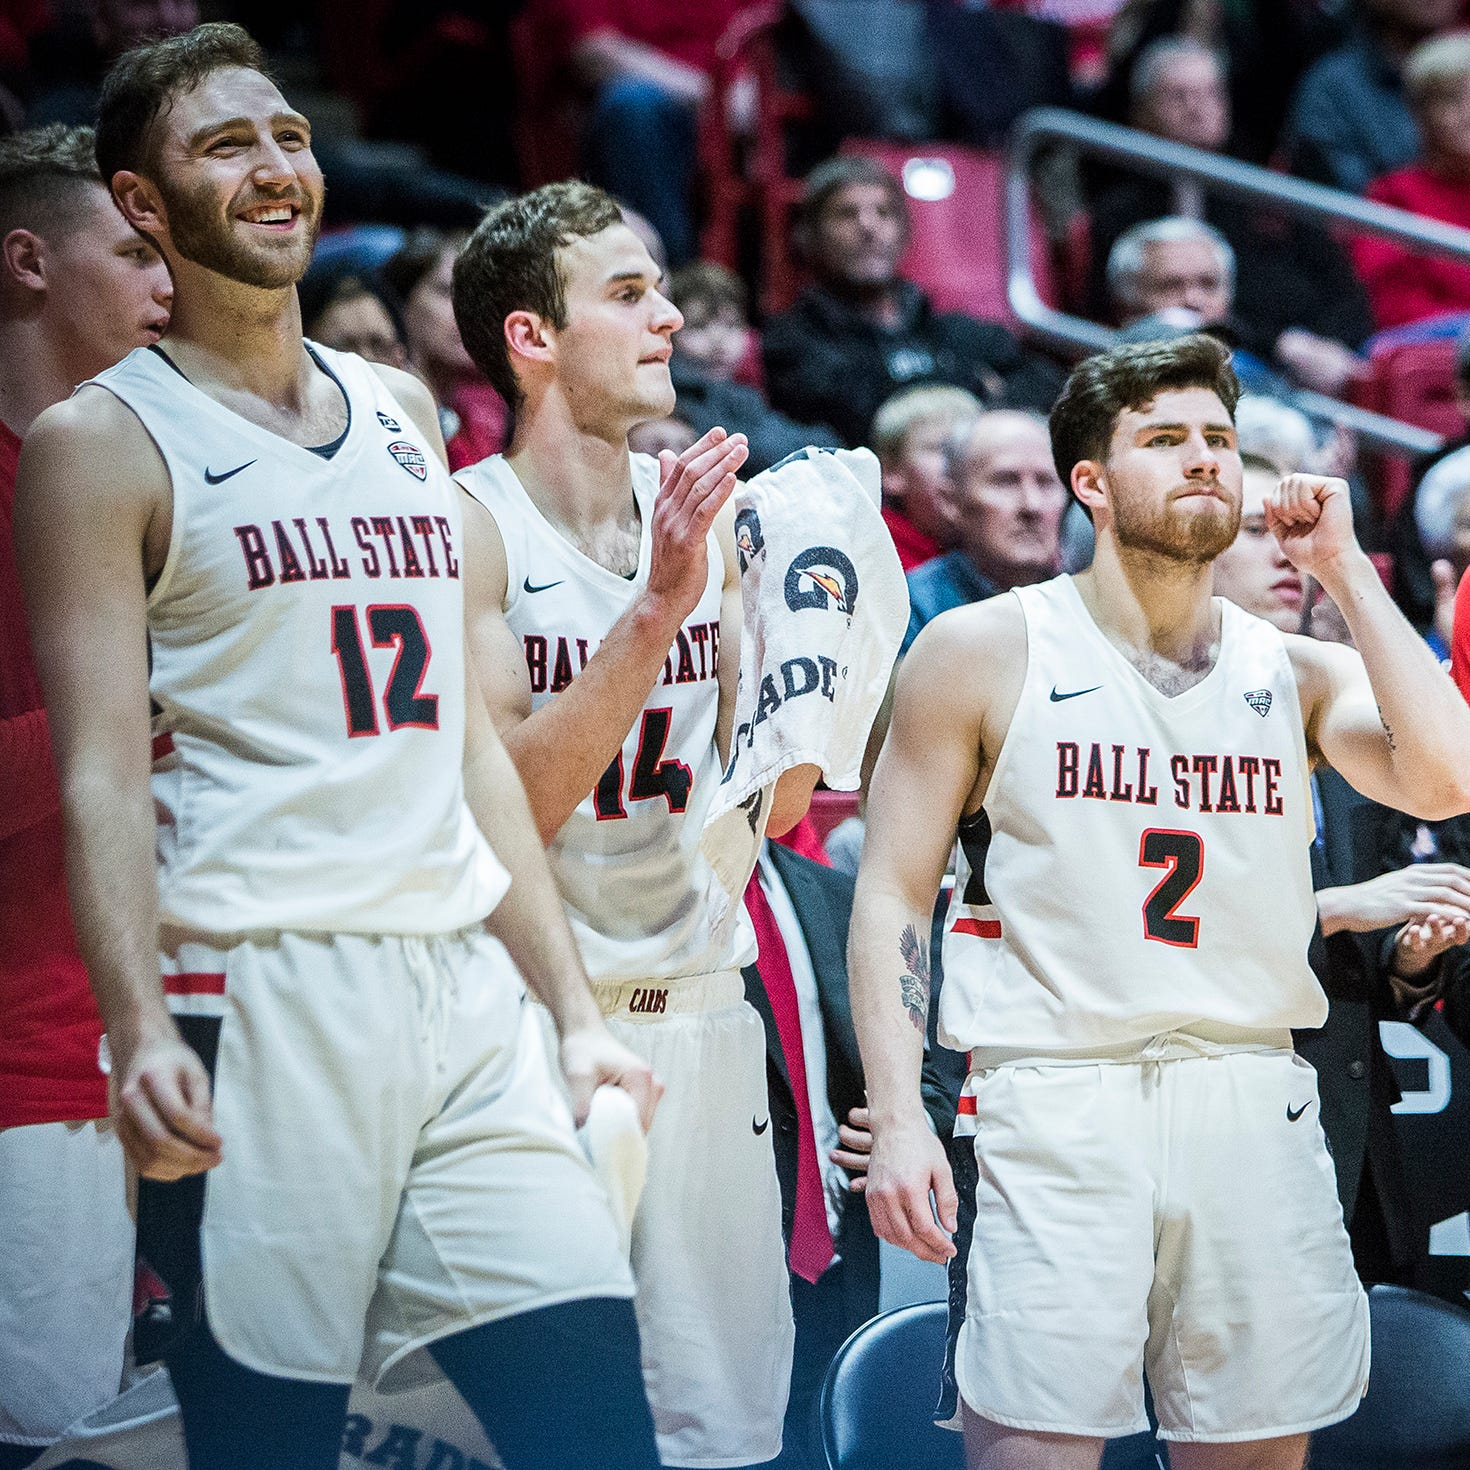 Cleveland-bound: Ball State basketball upsets Eastern Michigan in MAC Tournament